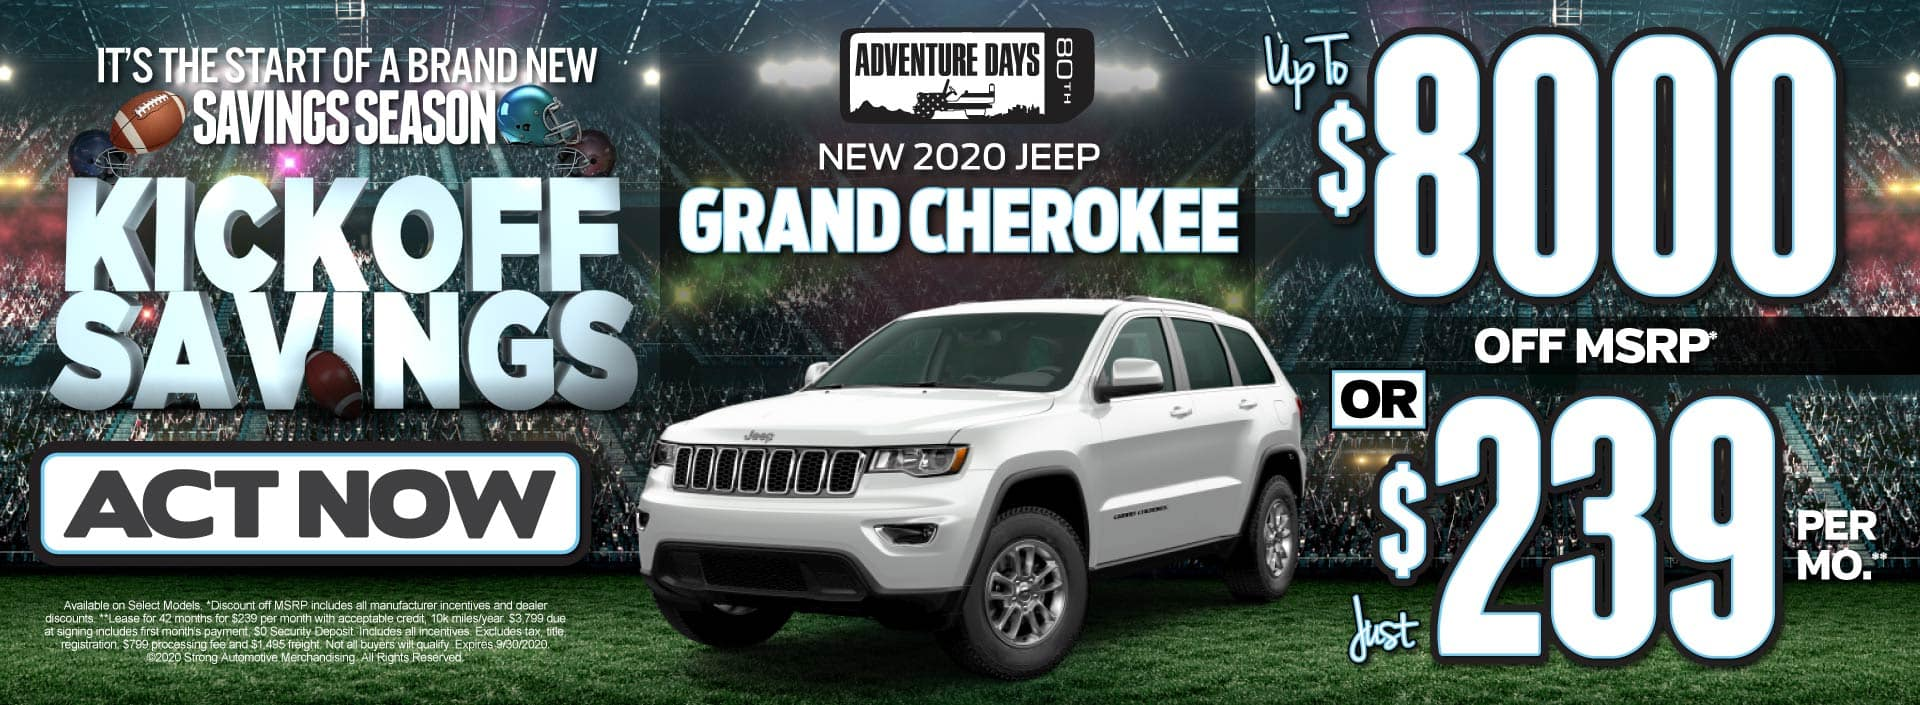 New 2020 Jeep Grand Cherokee - up to $8000 off MSRP or just $239 per month - Click to View Inventory